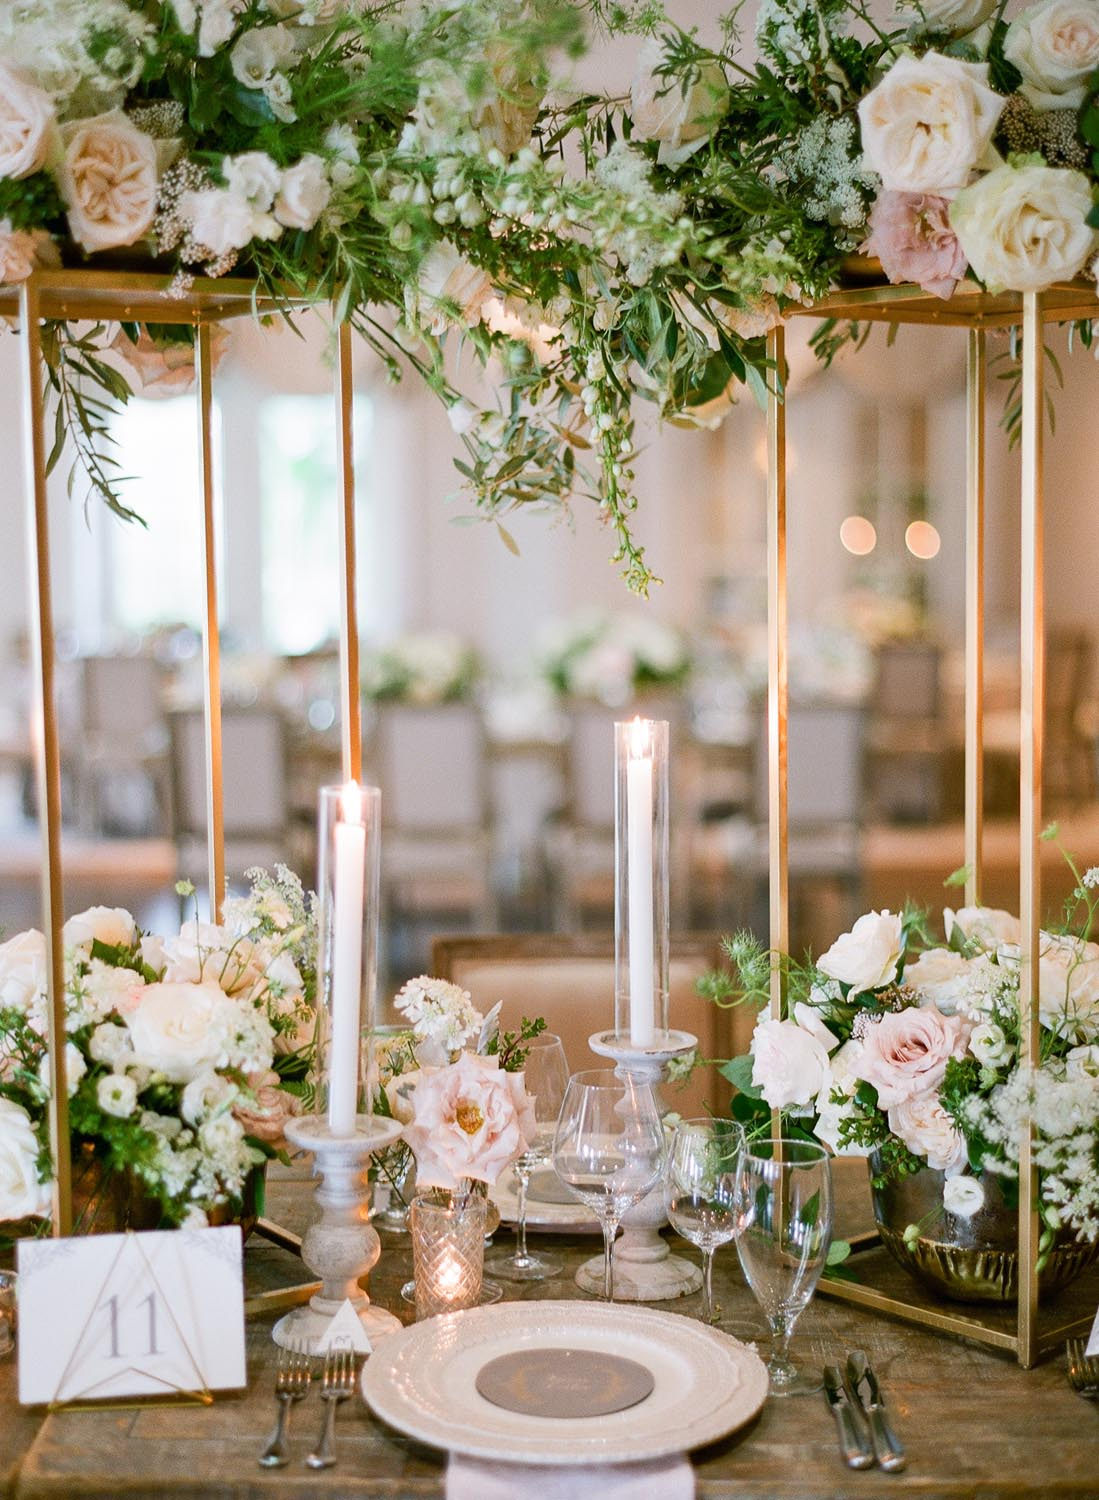 Taper candles and low rose floral arrangements. Wedding planning and design by A Charleston Bride.